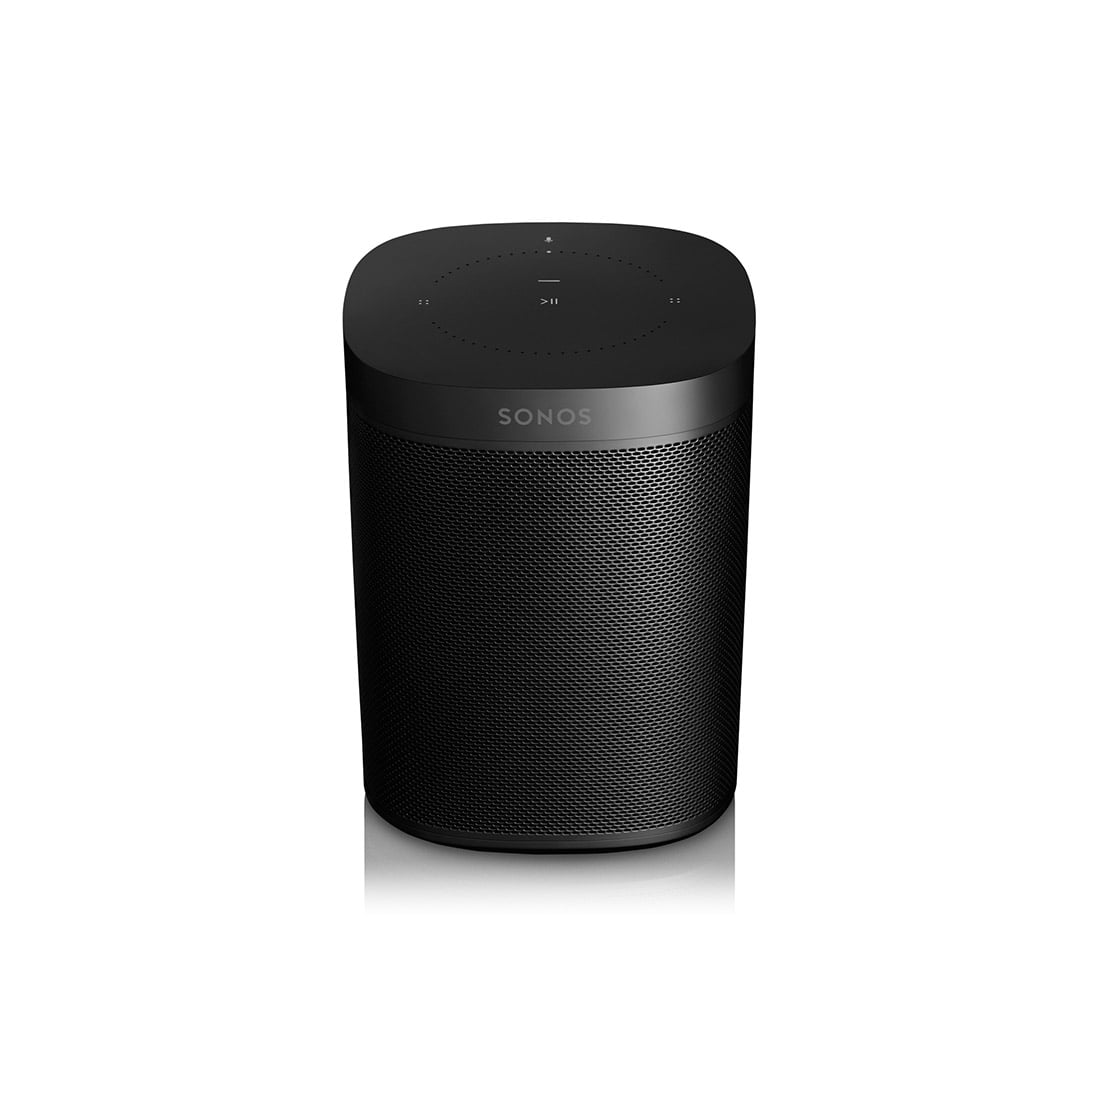 directed likewise New Sonos One Smart Speaker Black besides 9999287600050000 in addition Ring Spotlight Cam Wired 4 also edealinfo. on viper remote start ds4